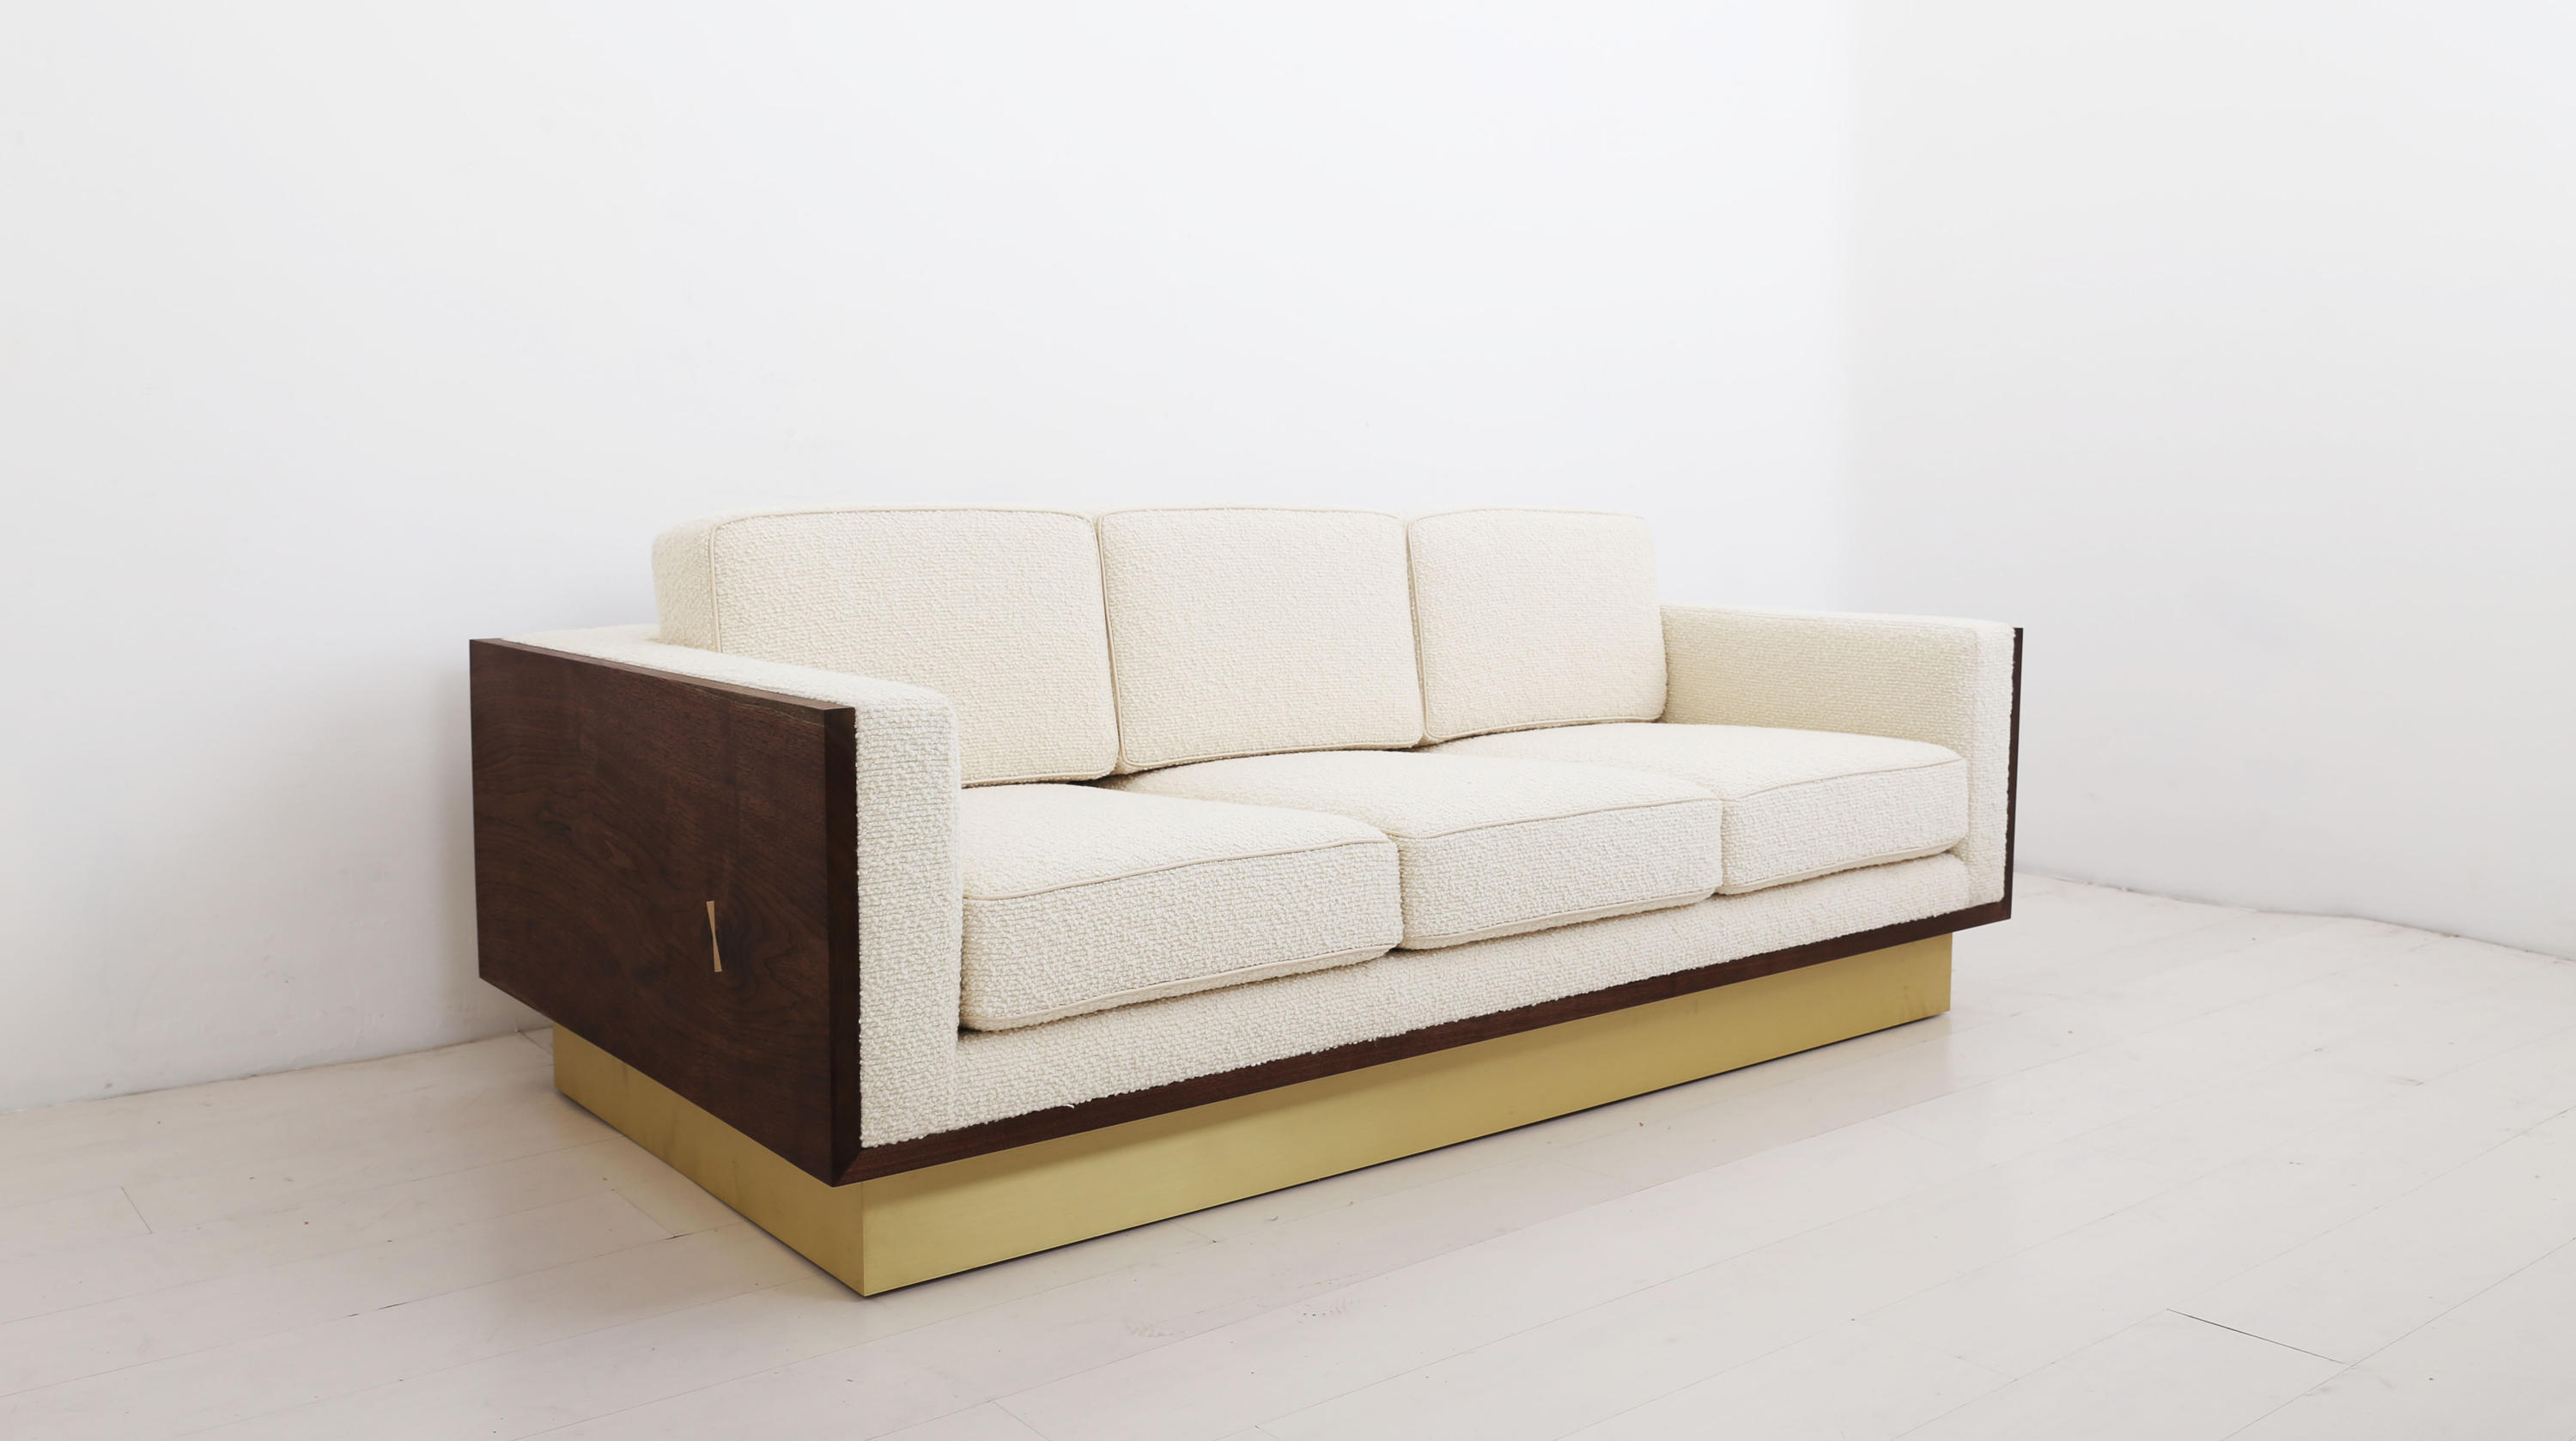 ST PIERRE SOFA Lounge sofas from Uhuru Design